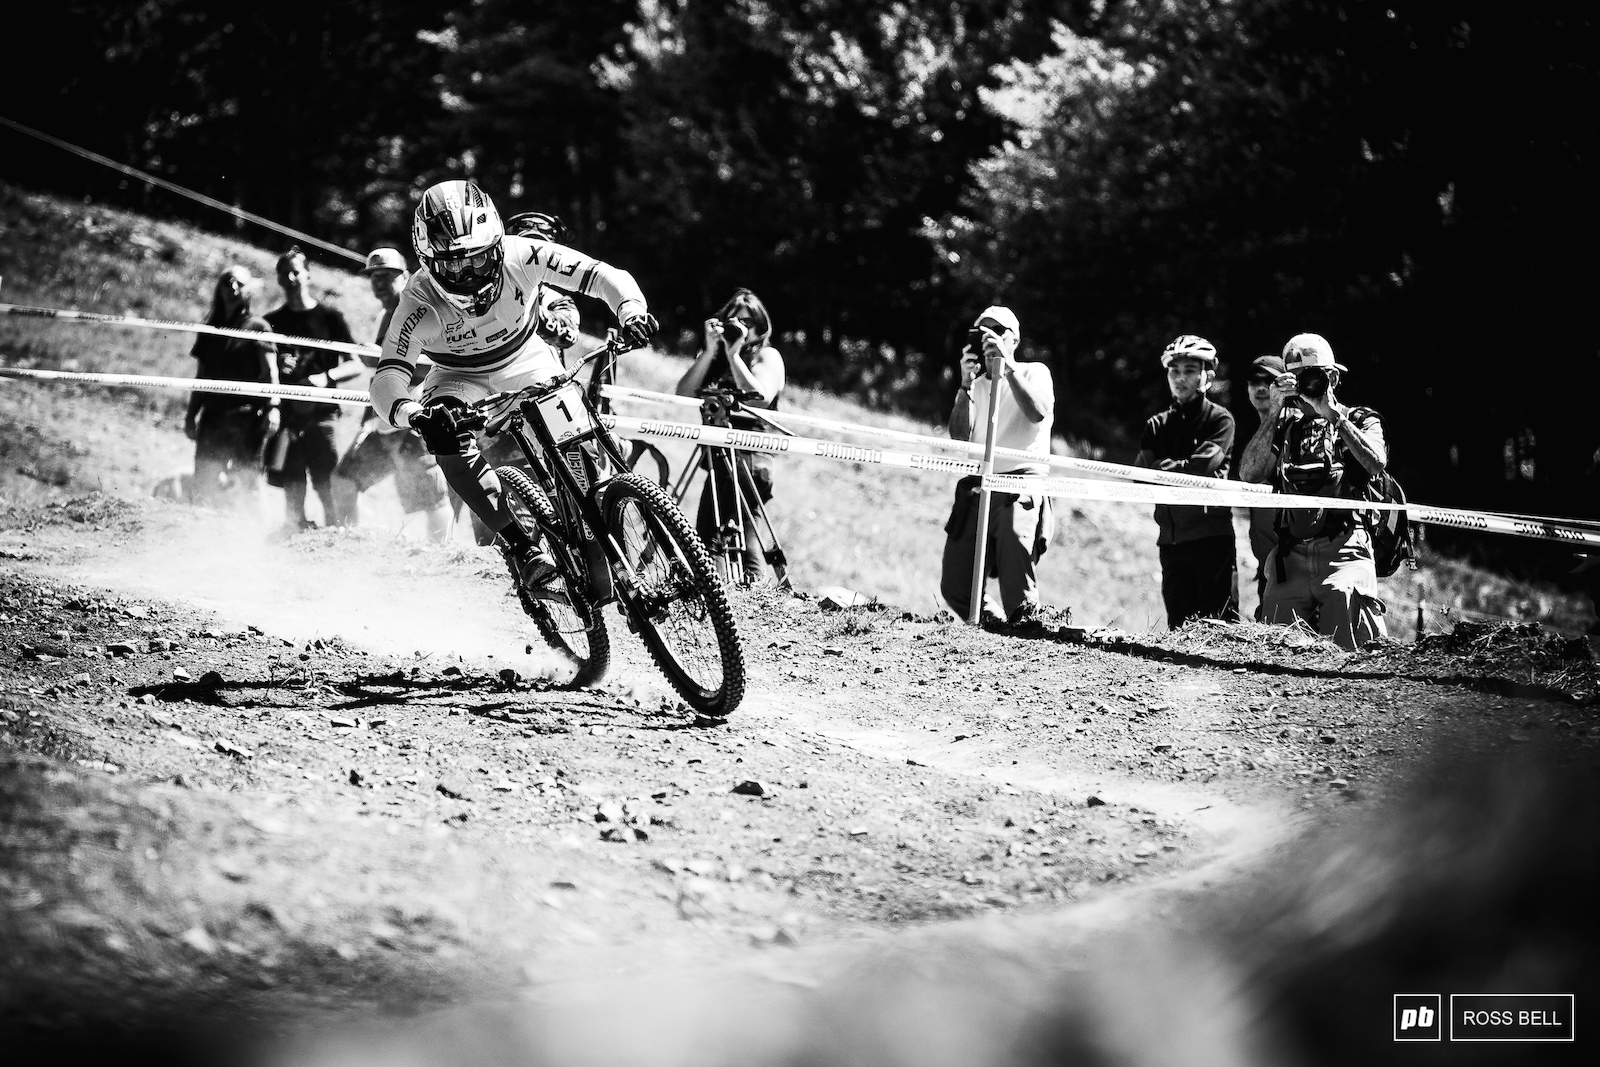 No point on offer today but Loic Bruni is one step closer towards that World Cup overall.